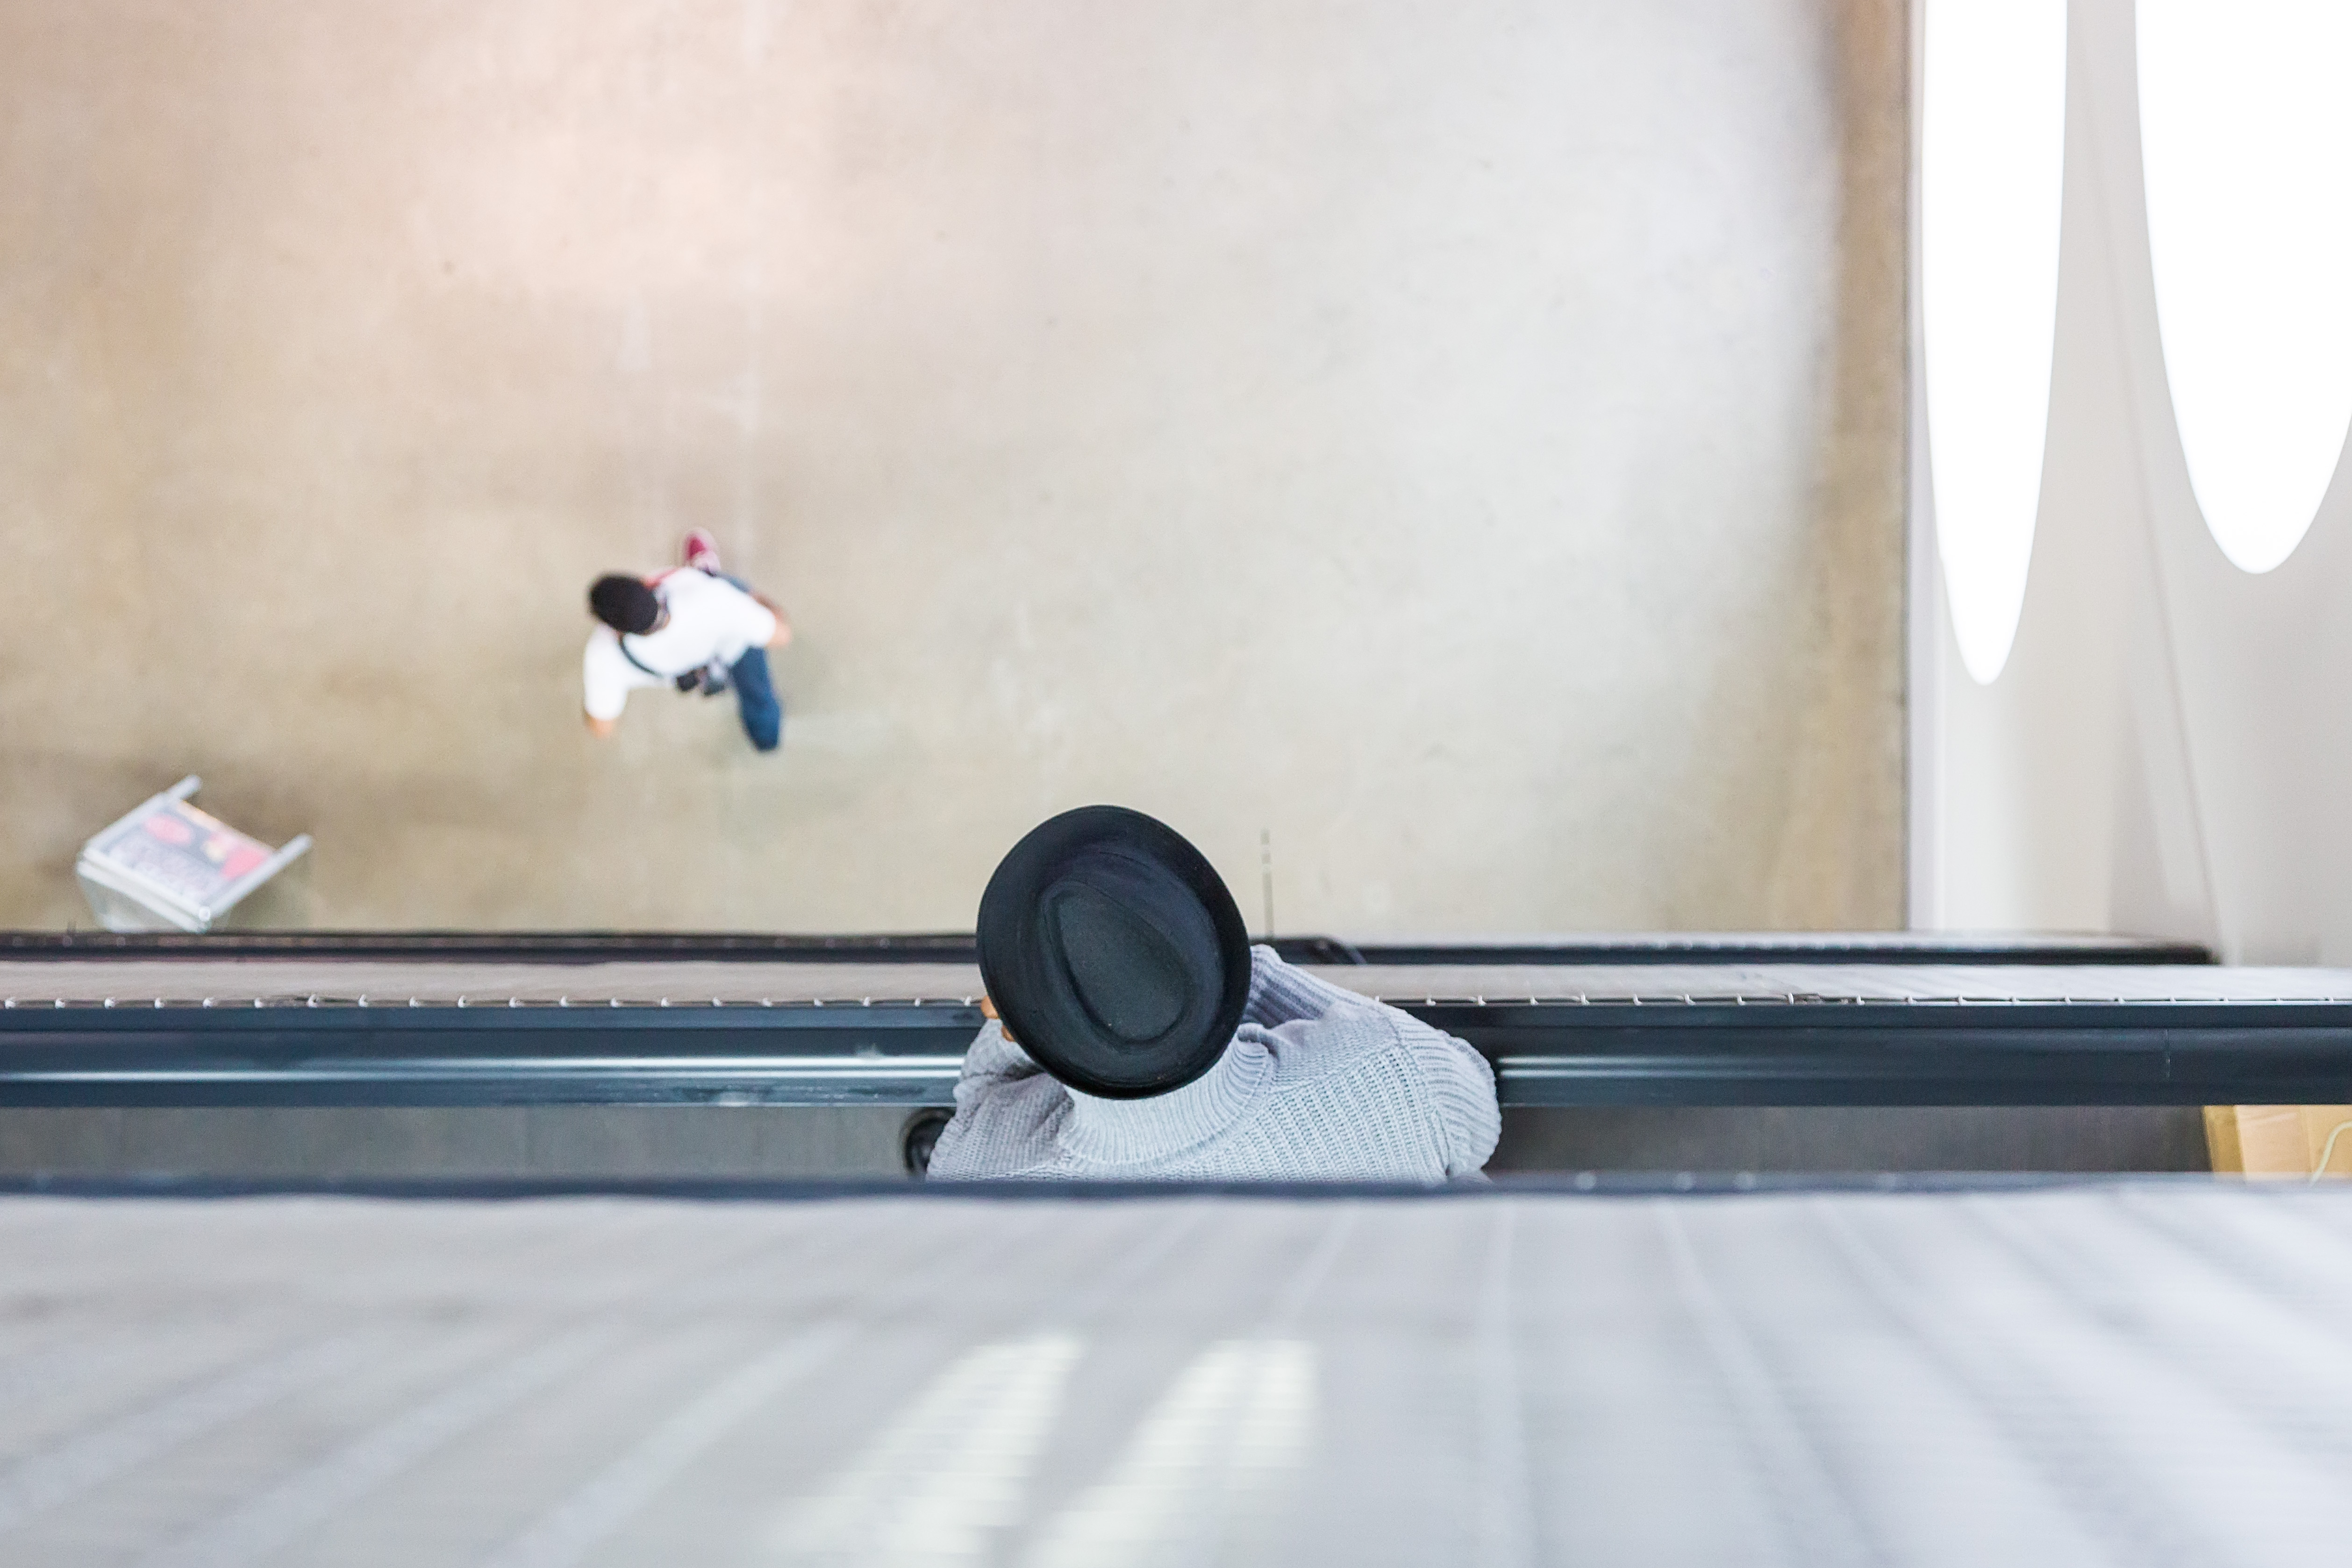 A man with a hat looking down from a balcony